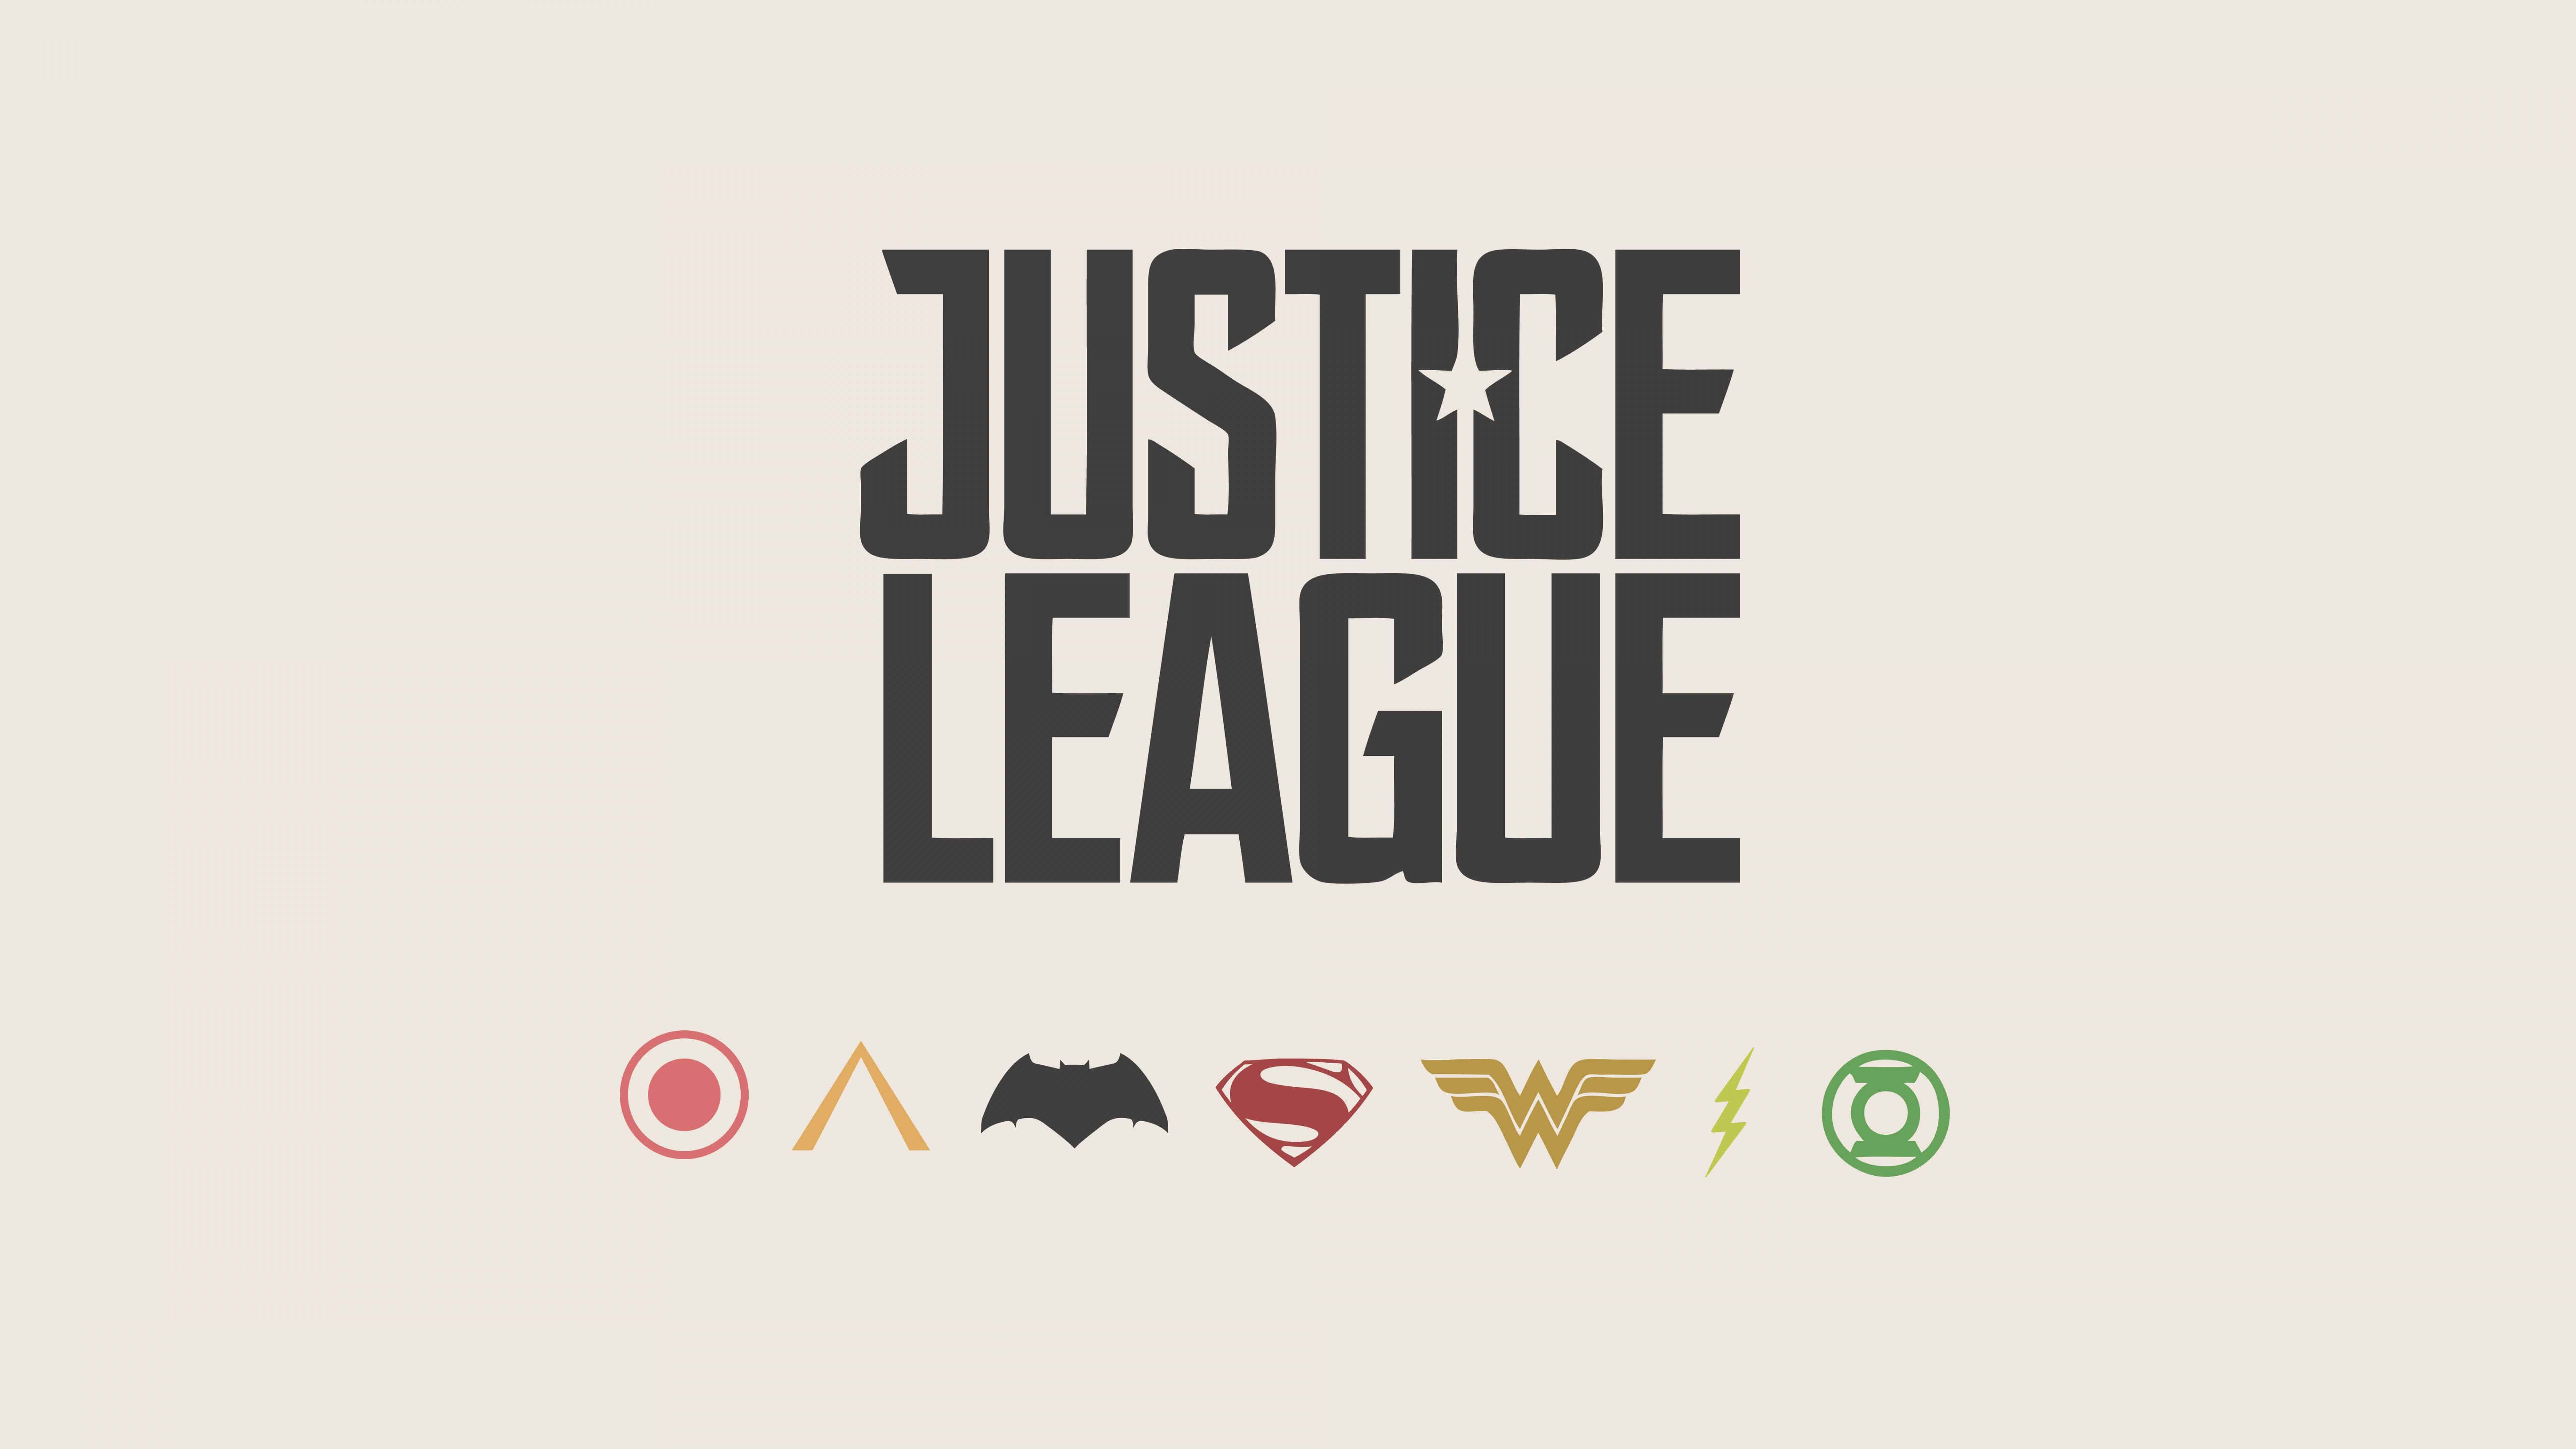 62108 constpoly furthermore Minimalism Justice League Uhd 8k Wallpaper also griffinengineering together with Dual Active Bridge Converter as well Katerra Confirms Clt Glulam Manufacturing Facility Wa. on engineering